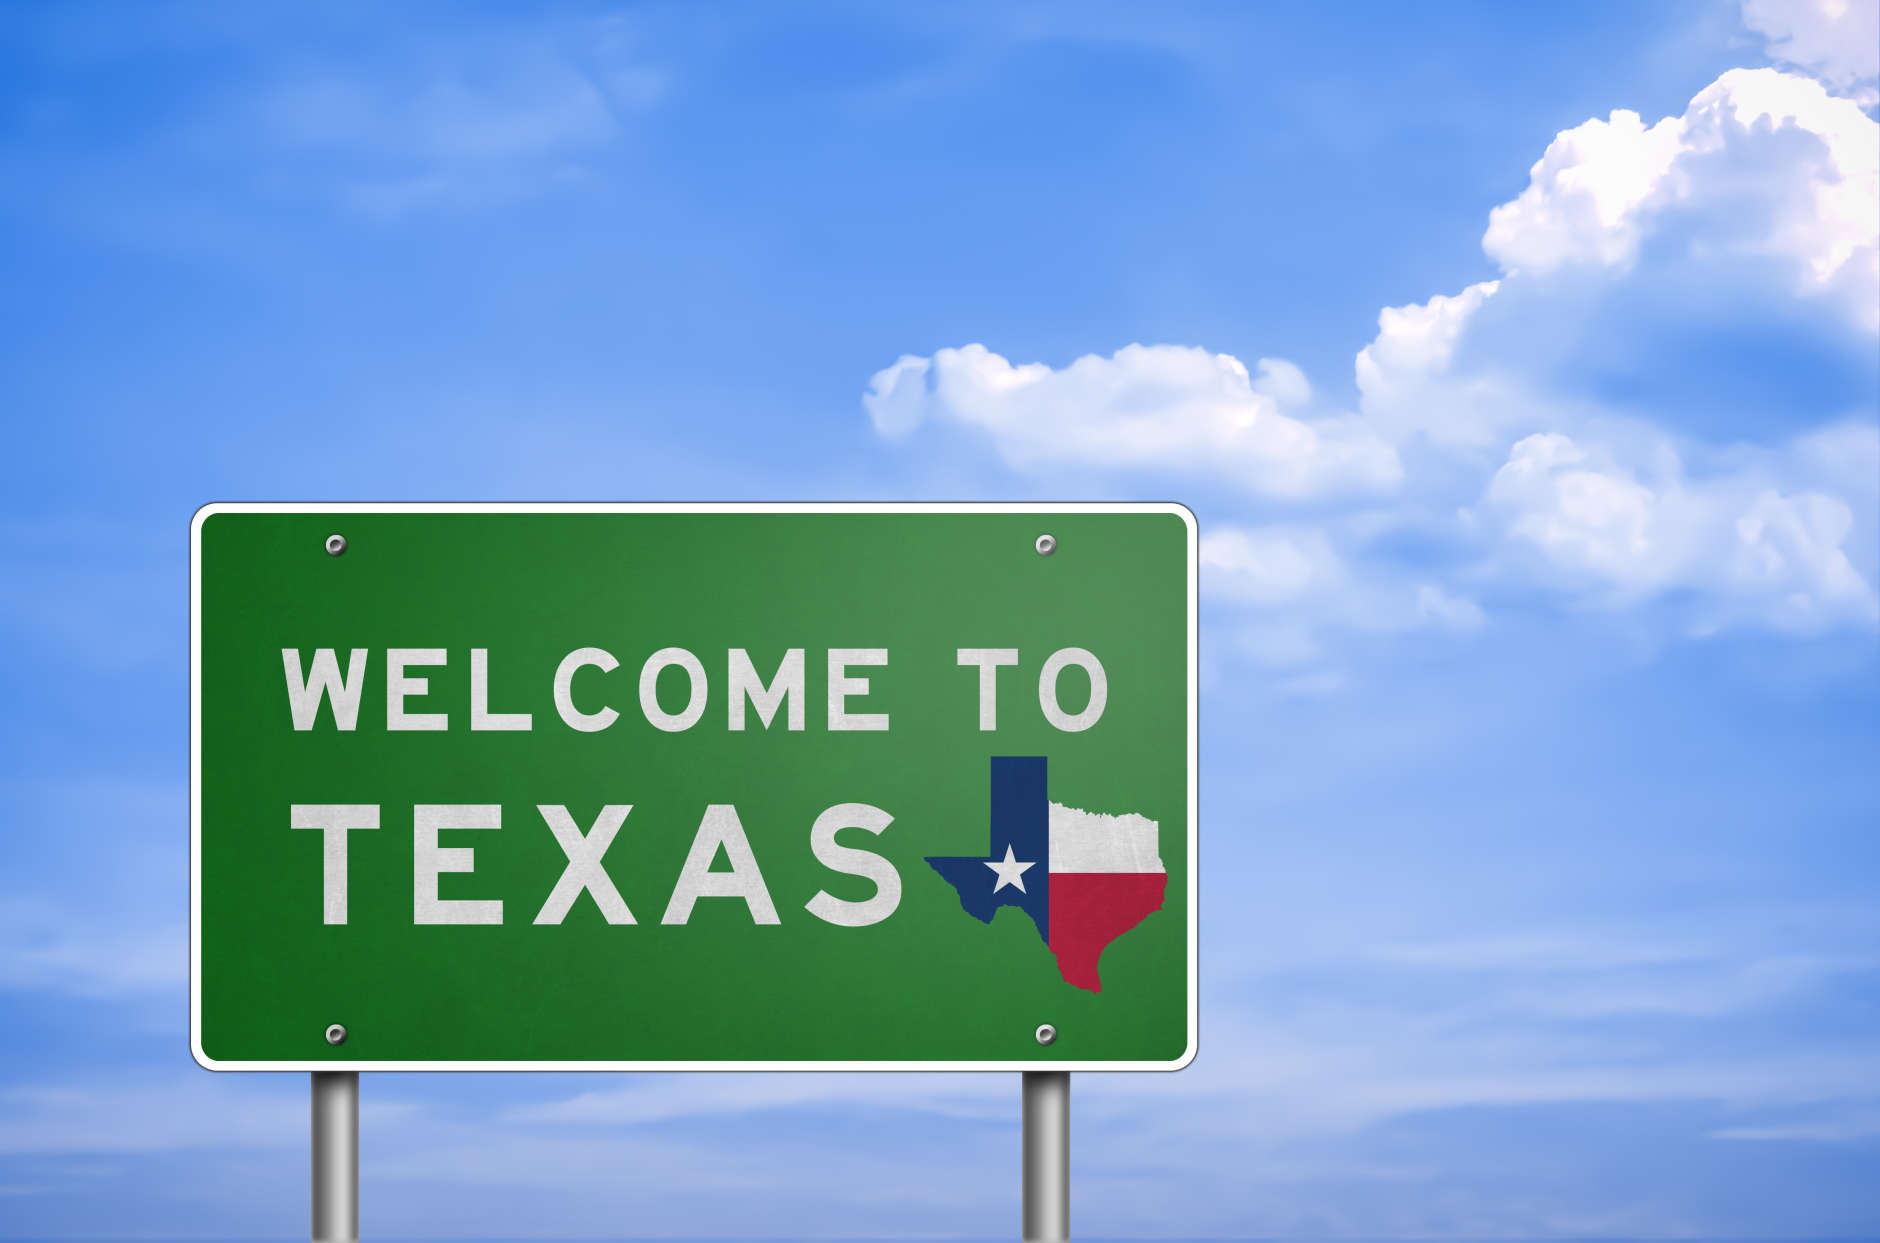 In 1845, Texas was admitted as the 28th state. (Thinkstock)